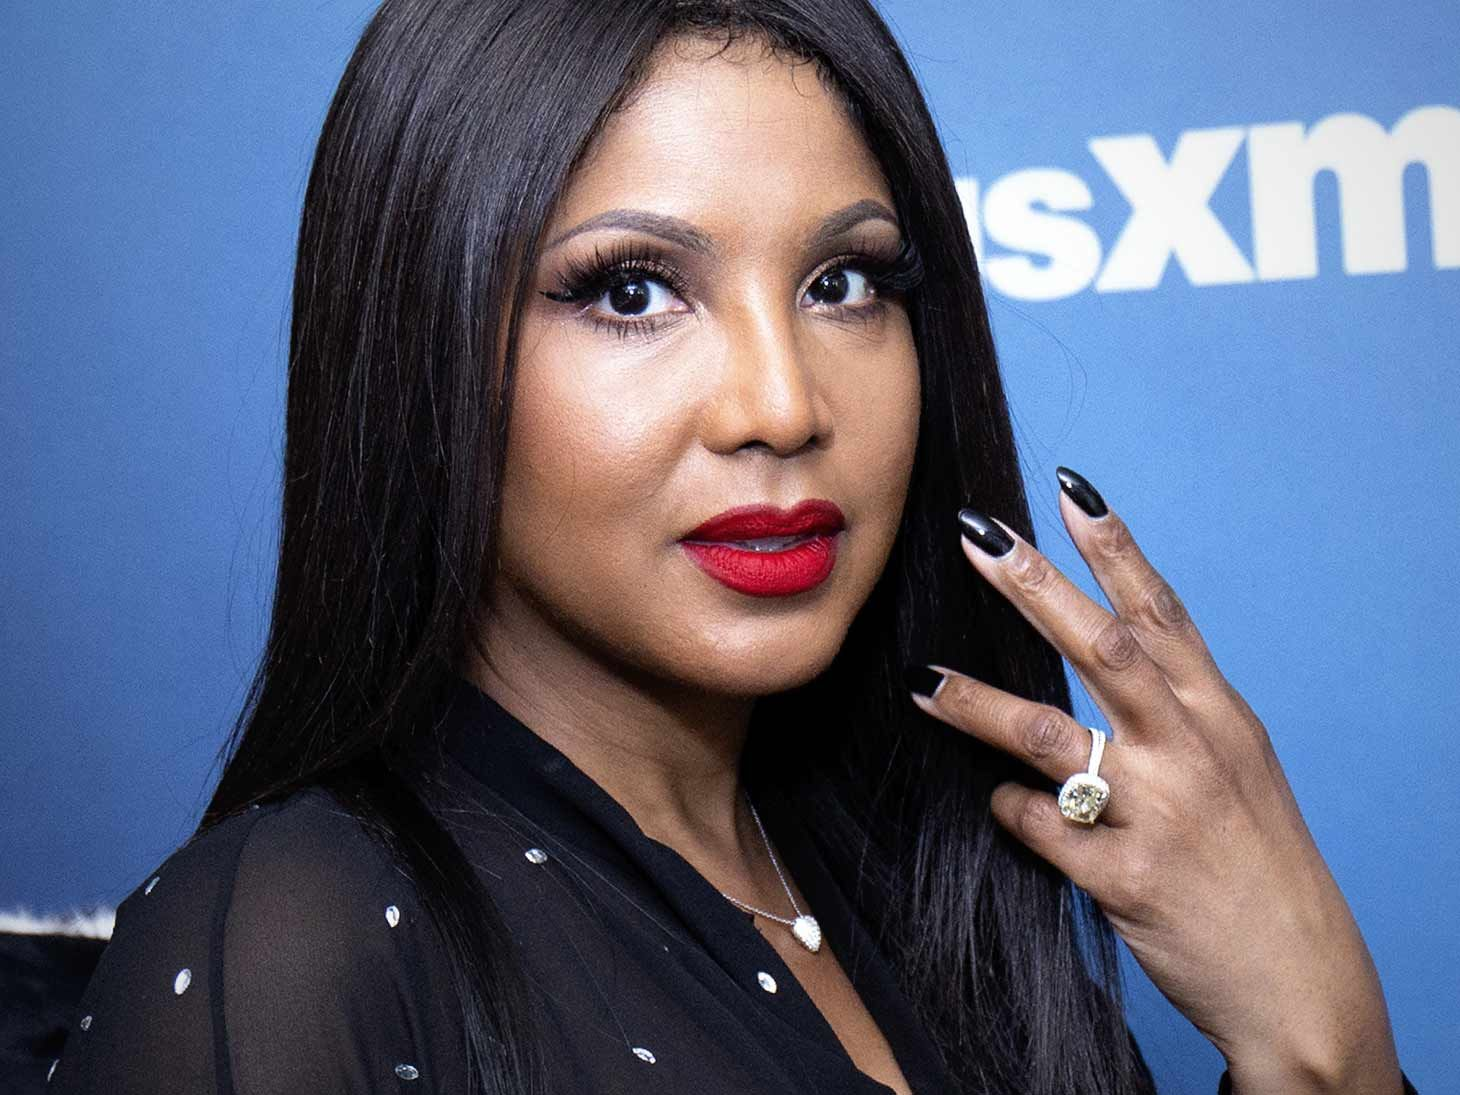 toni-braxton-shares-a-funny-video-about-the-braxton-family-values